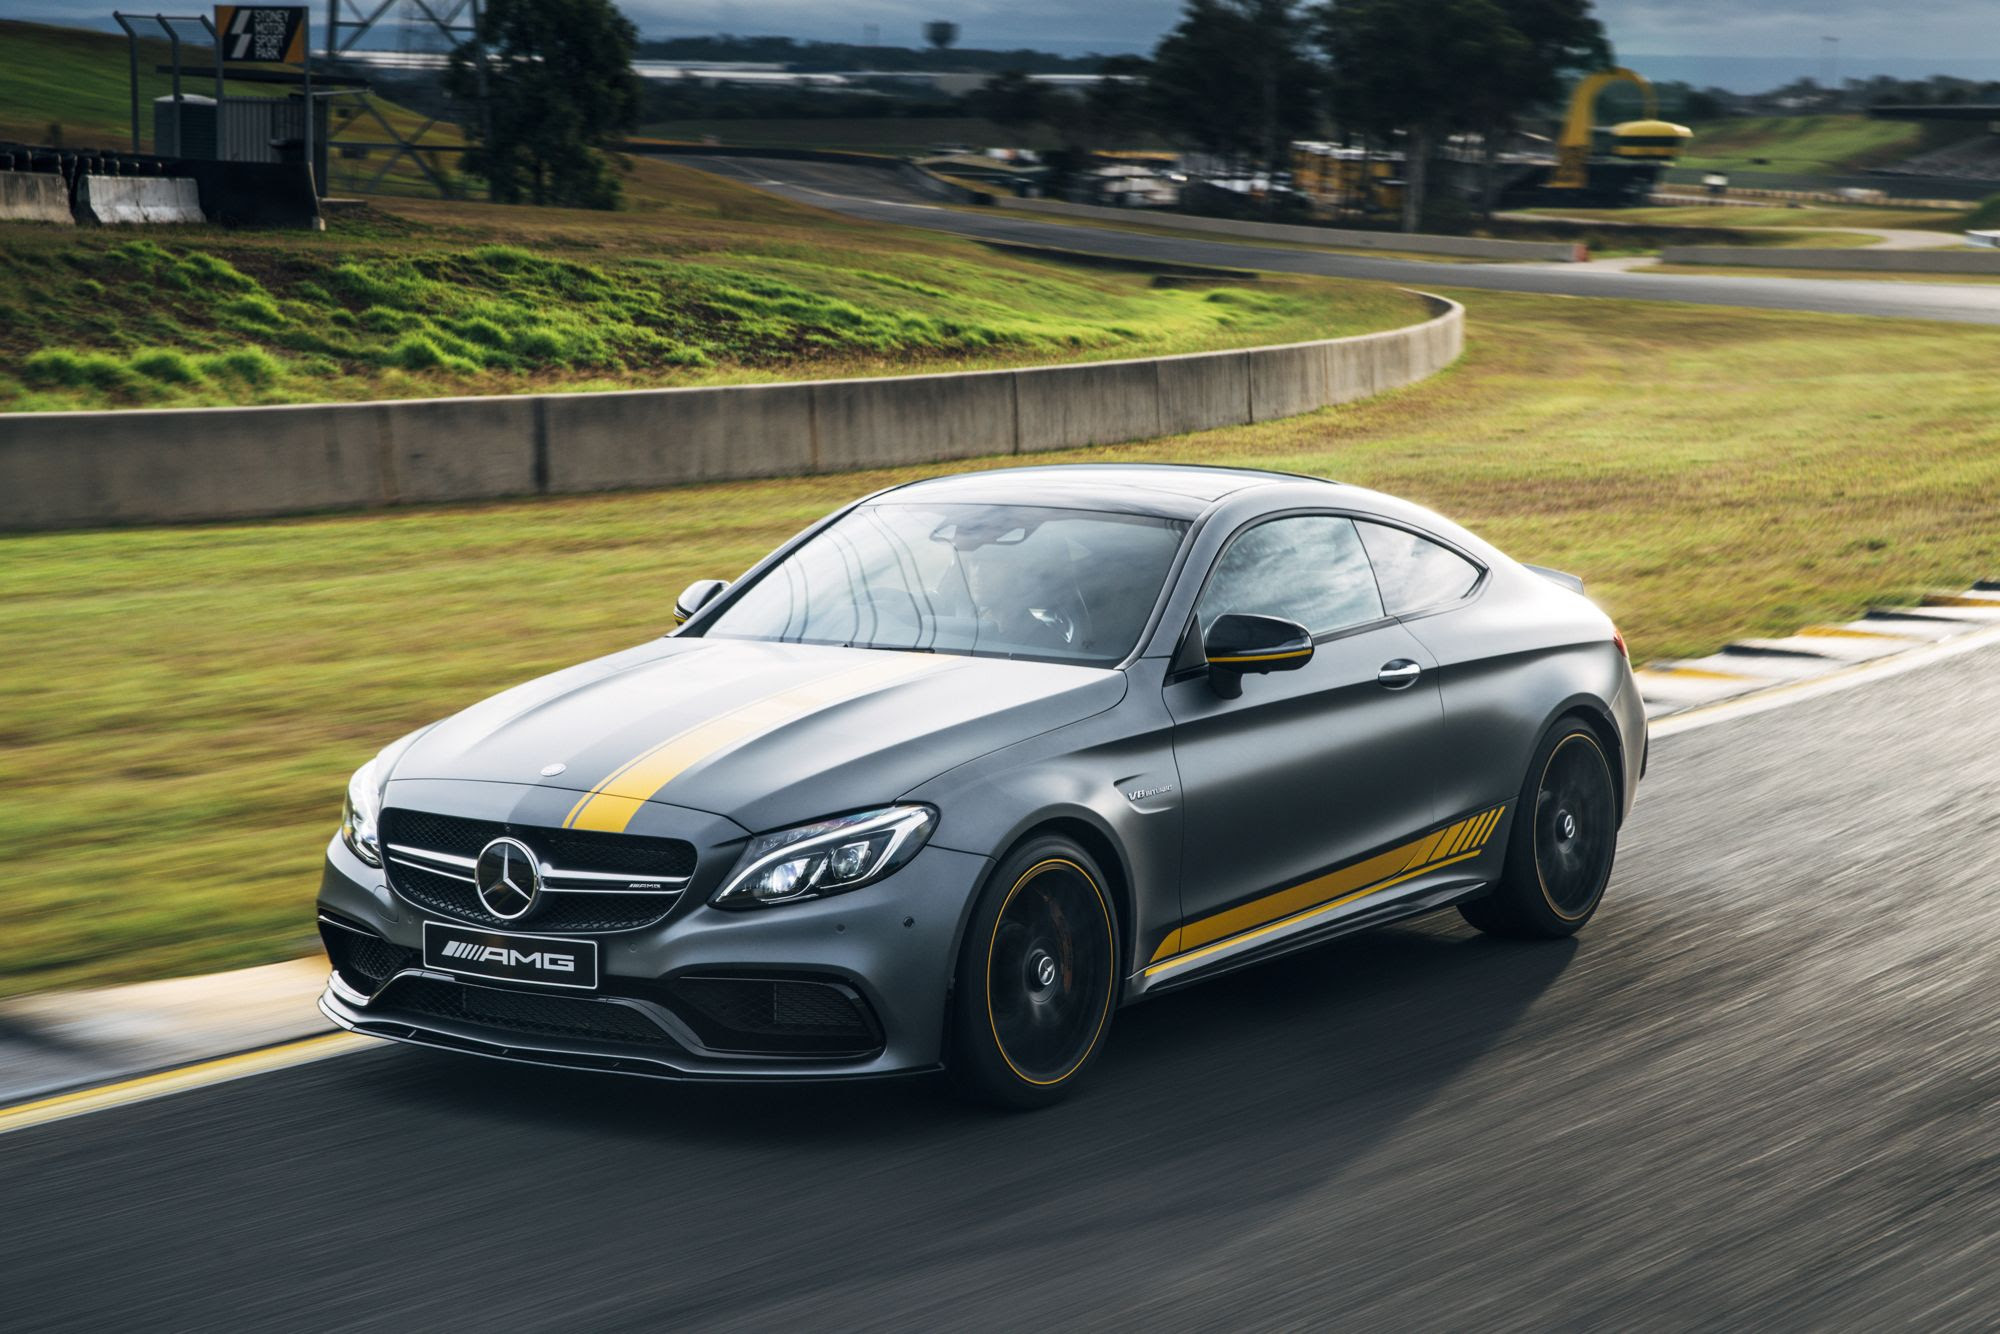 2016 Mercedes-AMG C63 S Coupe Review: Track test | CarAdvice